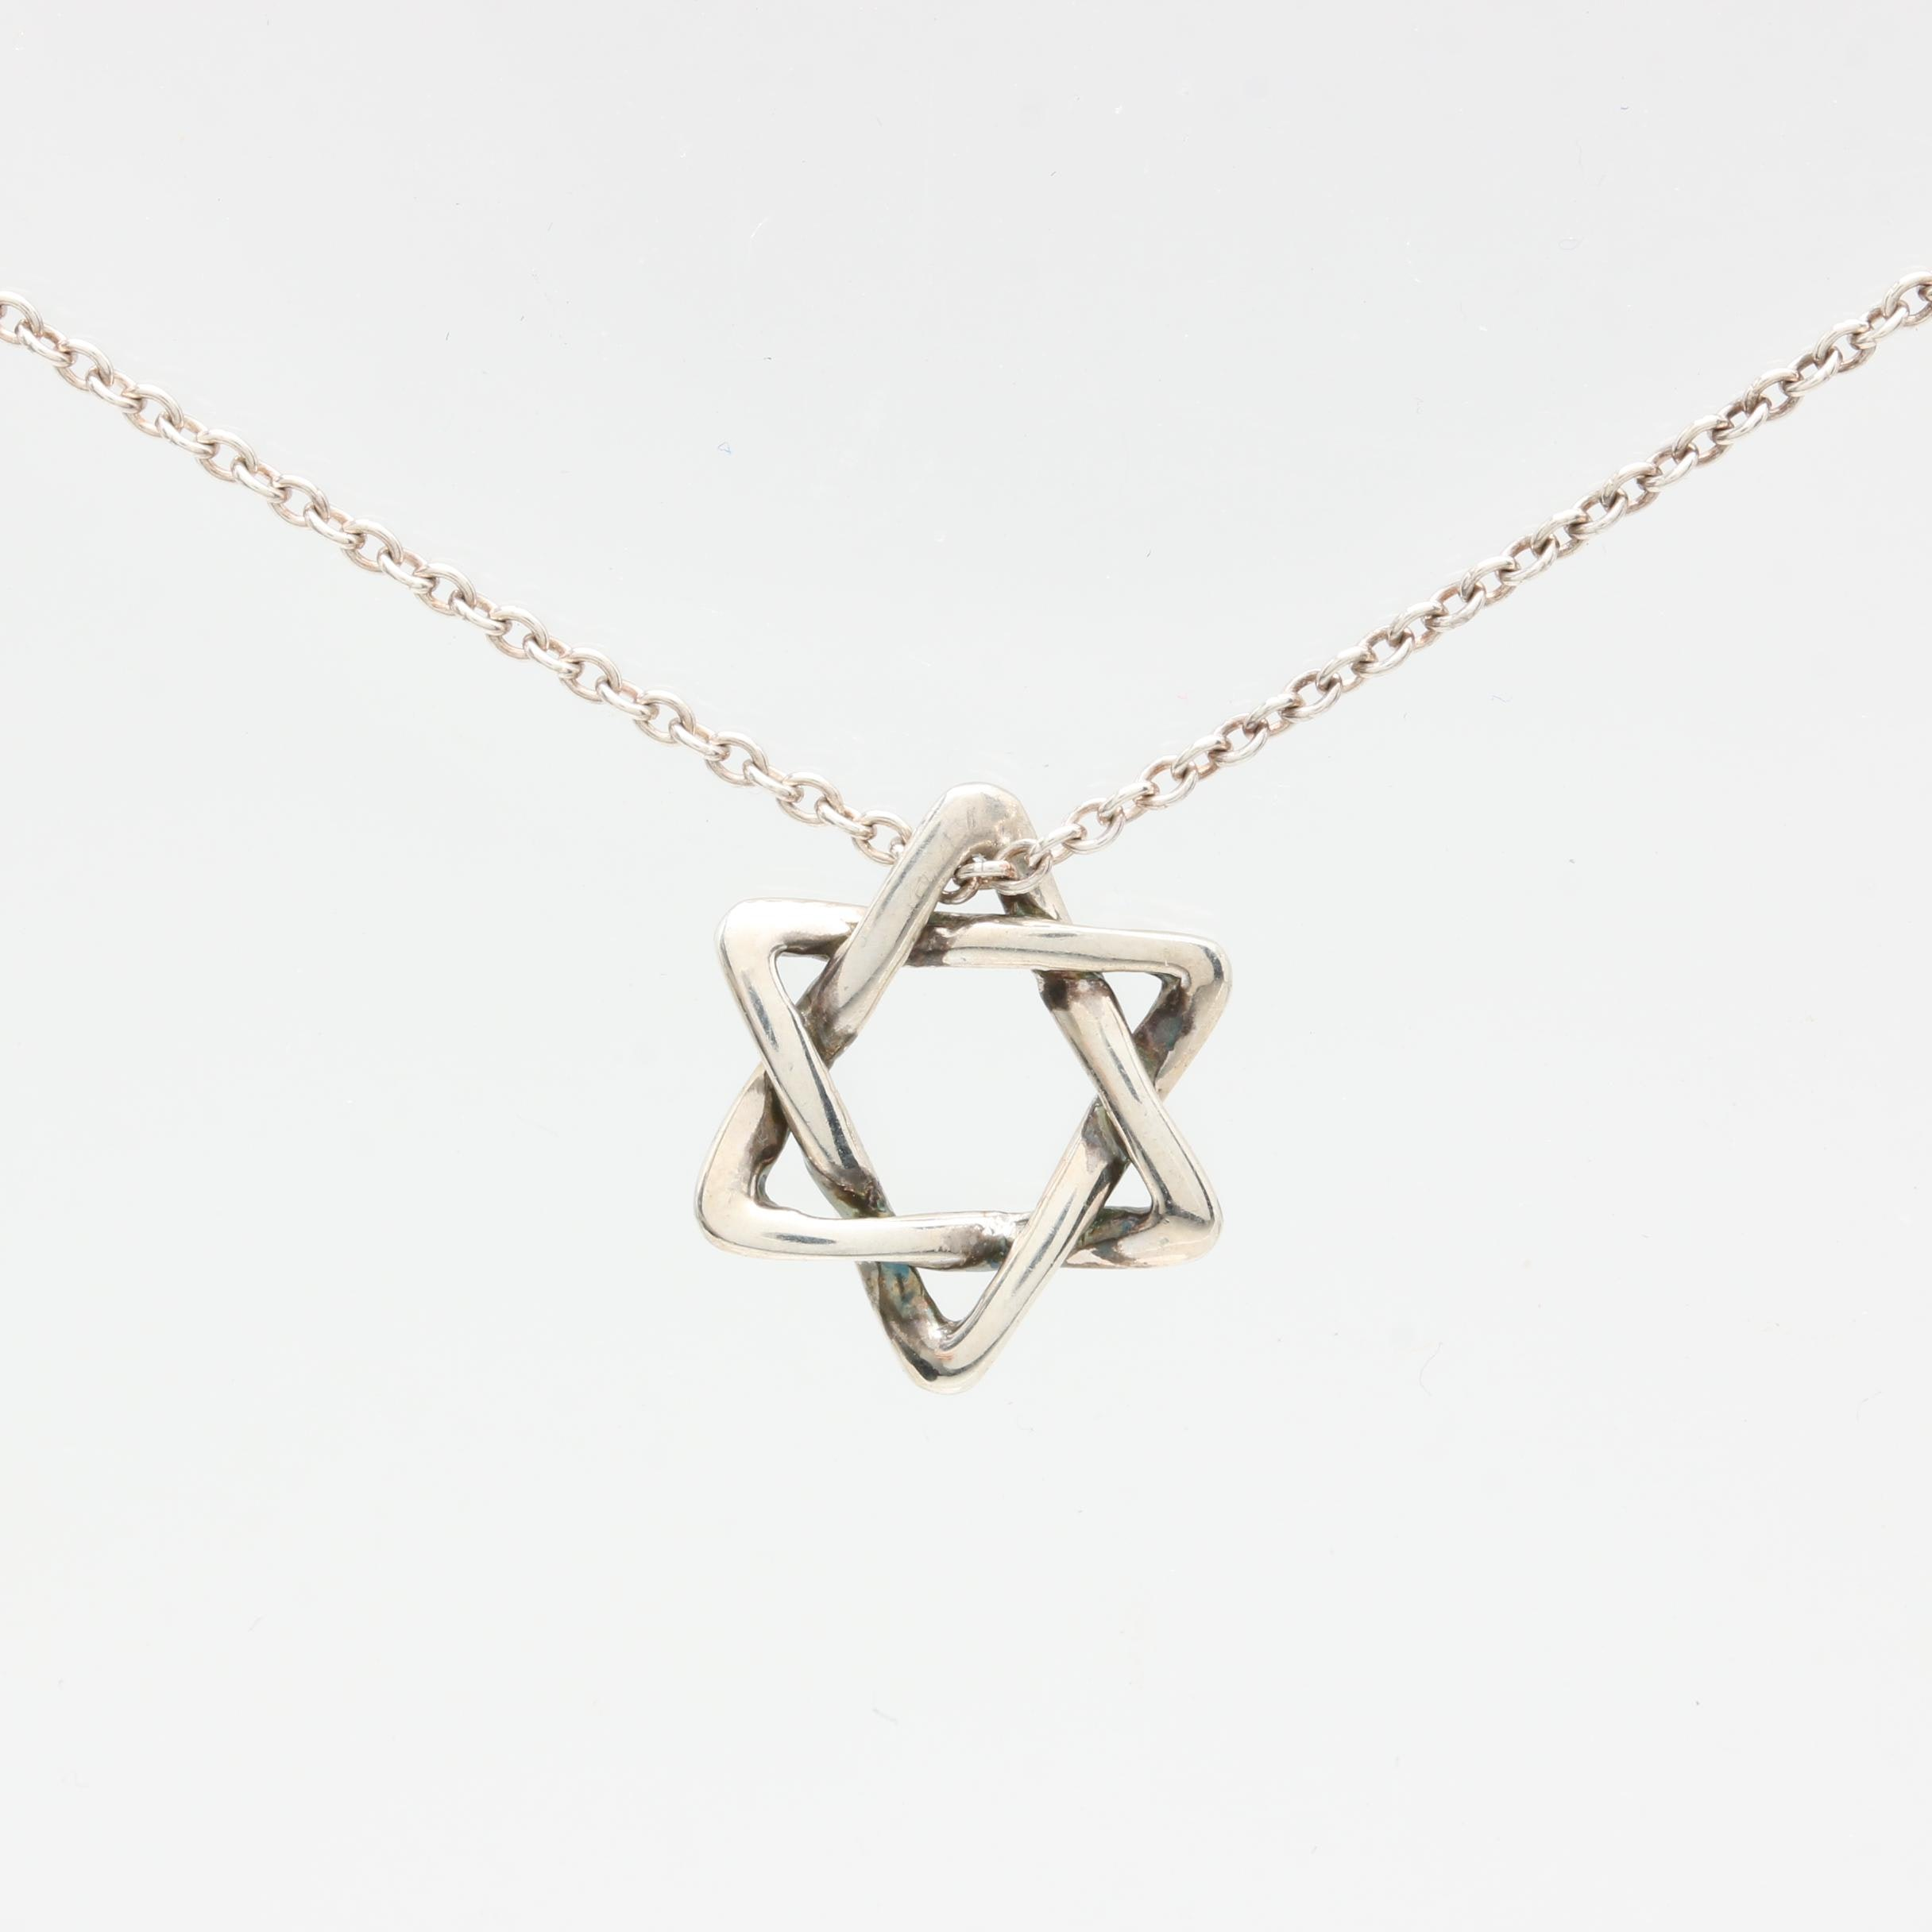 Elsa Peretti for Tiffany & Co. Sterling Silver Star of David Pendant Necklace